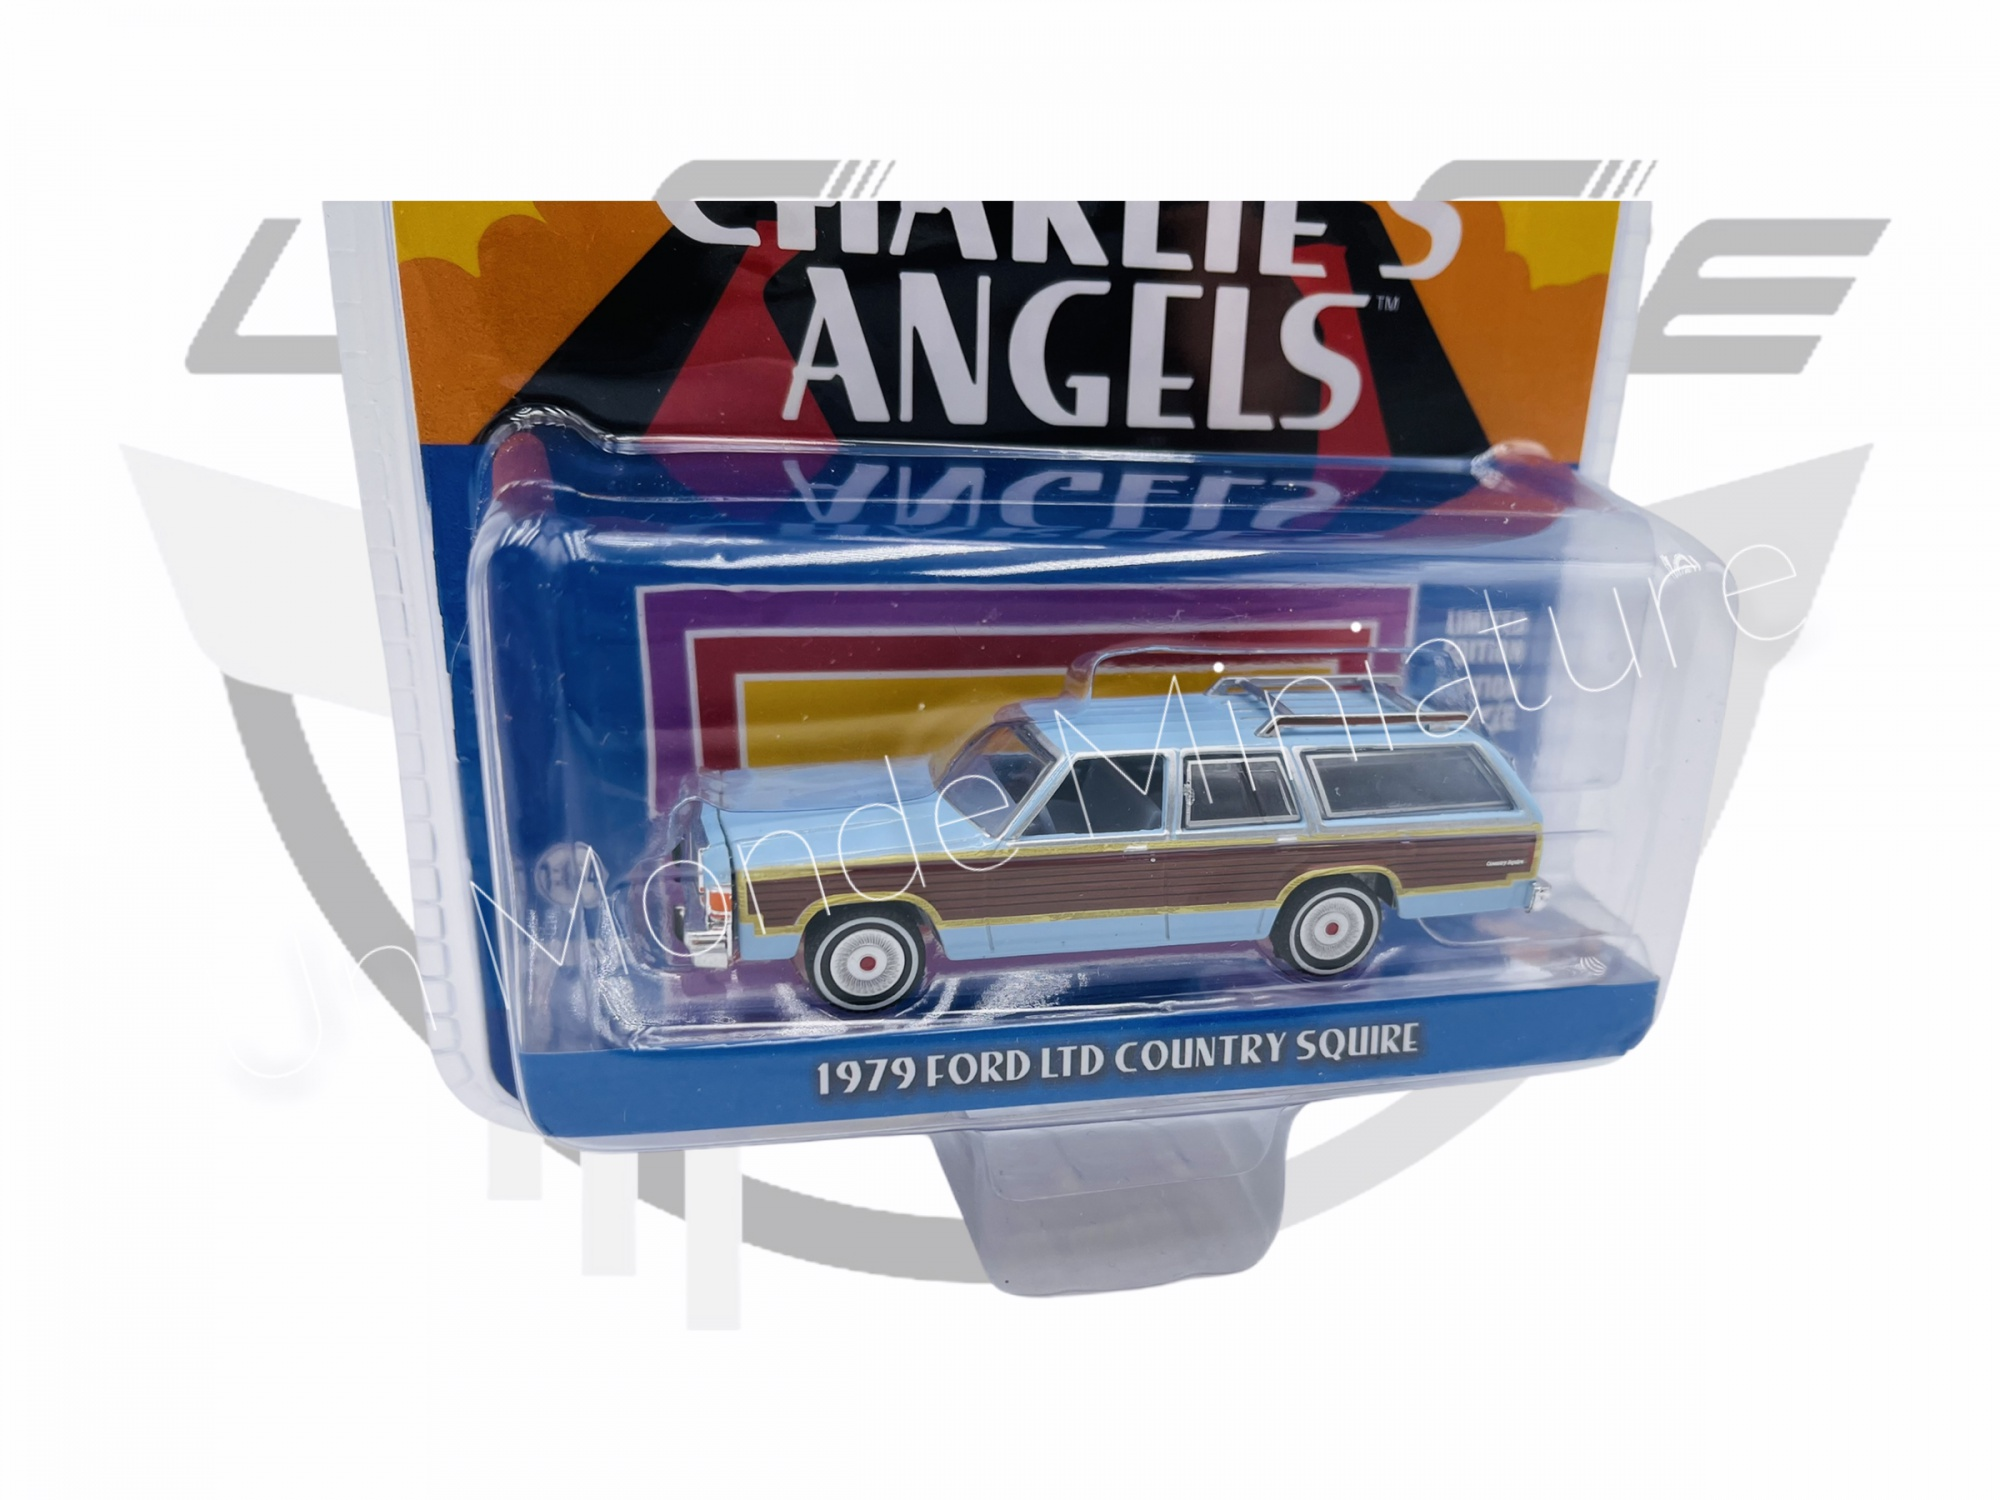 Ford LTD Country Squire 1979